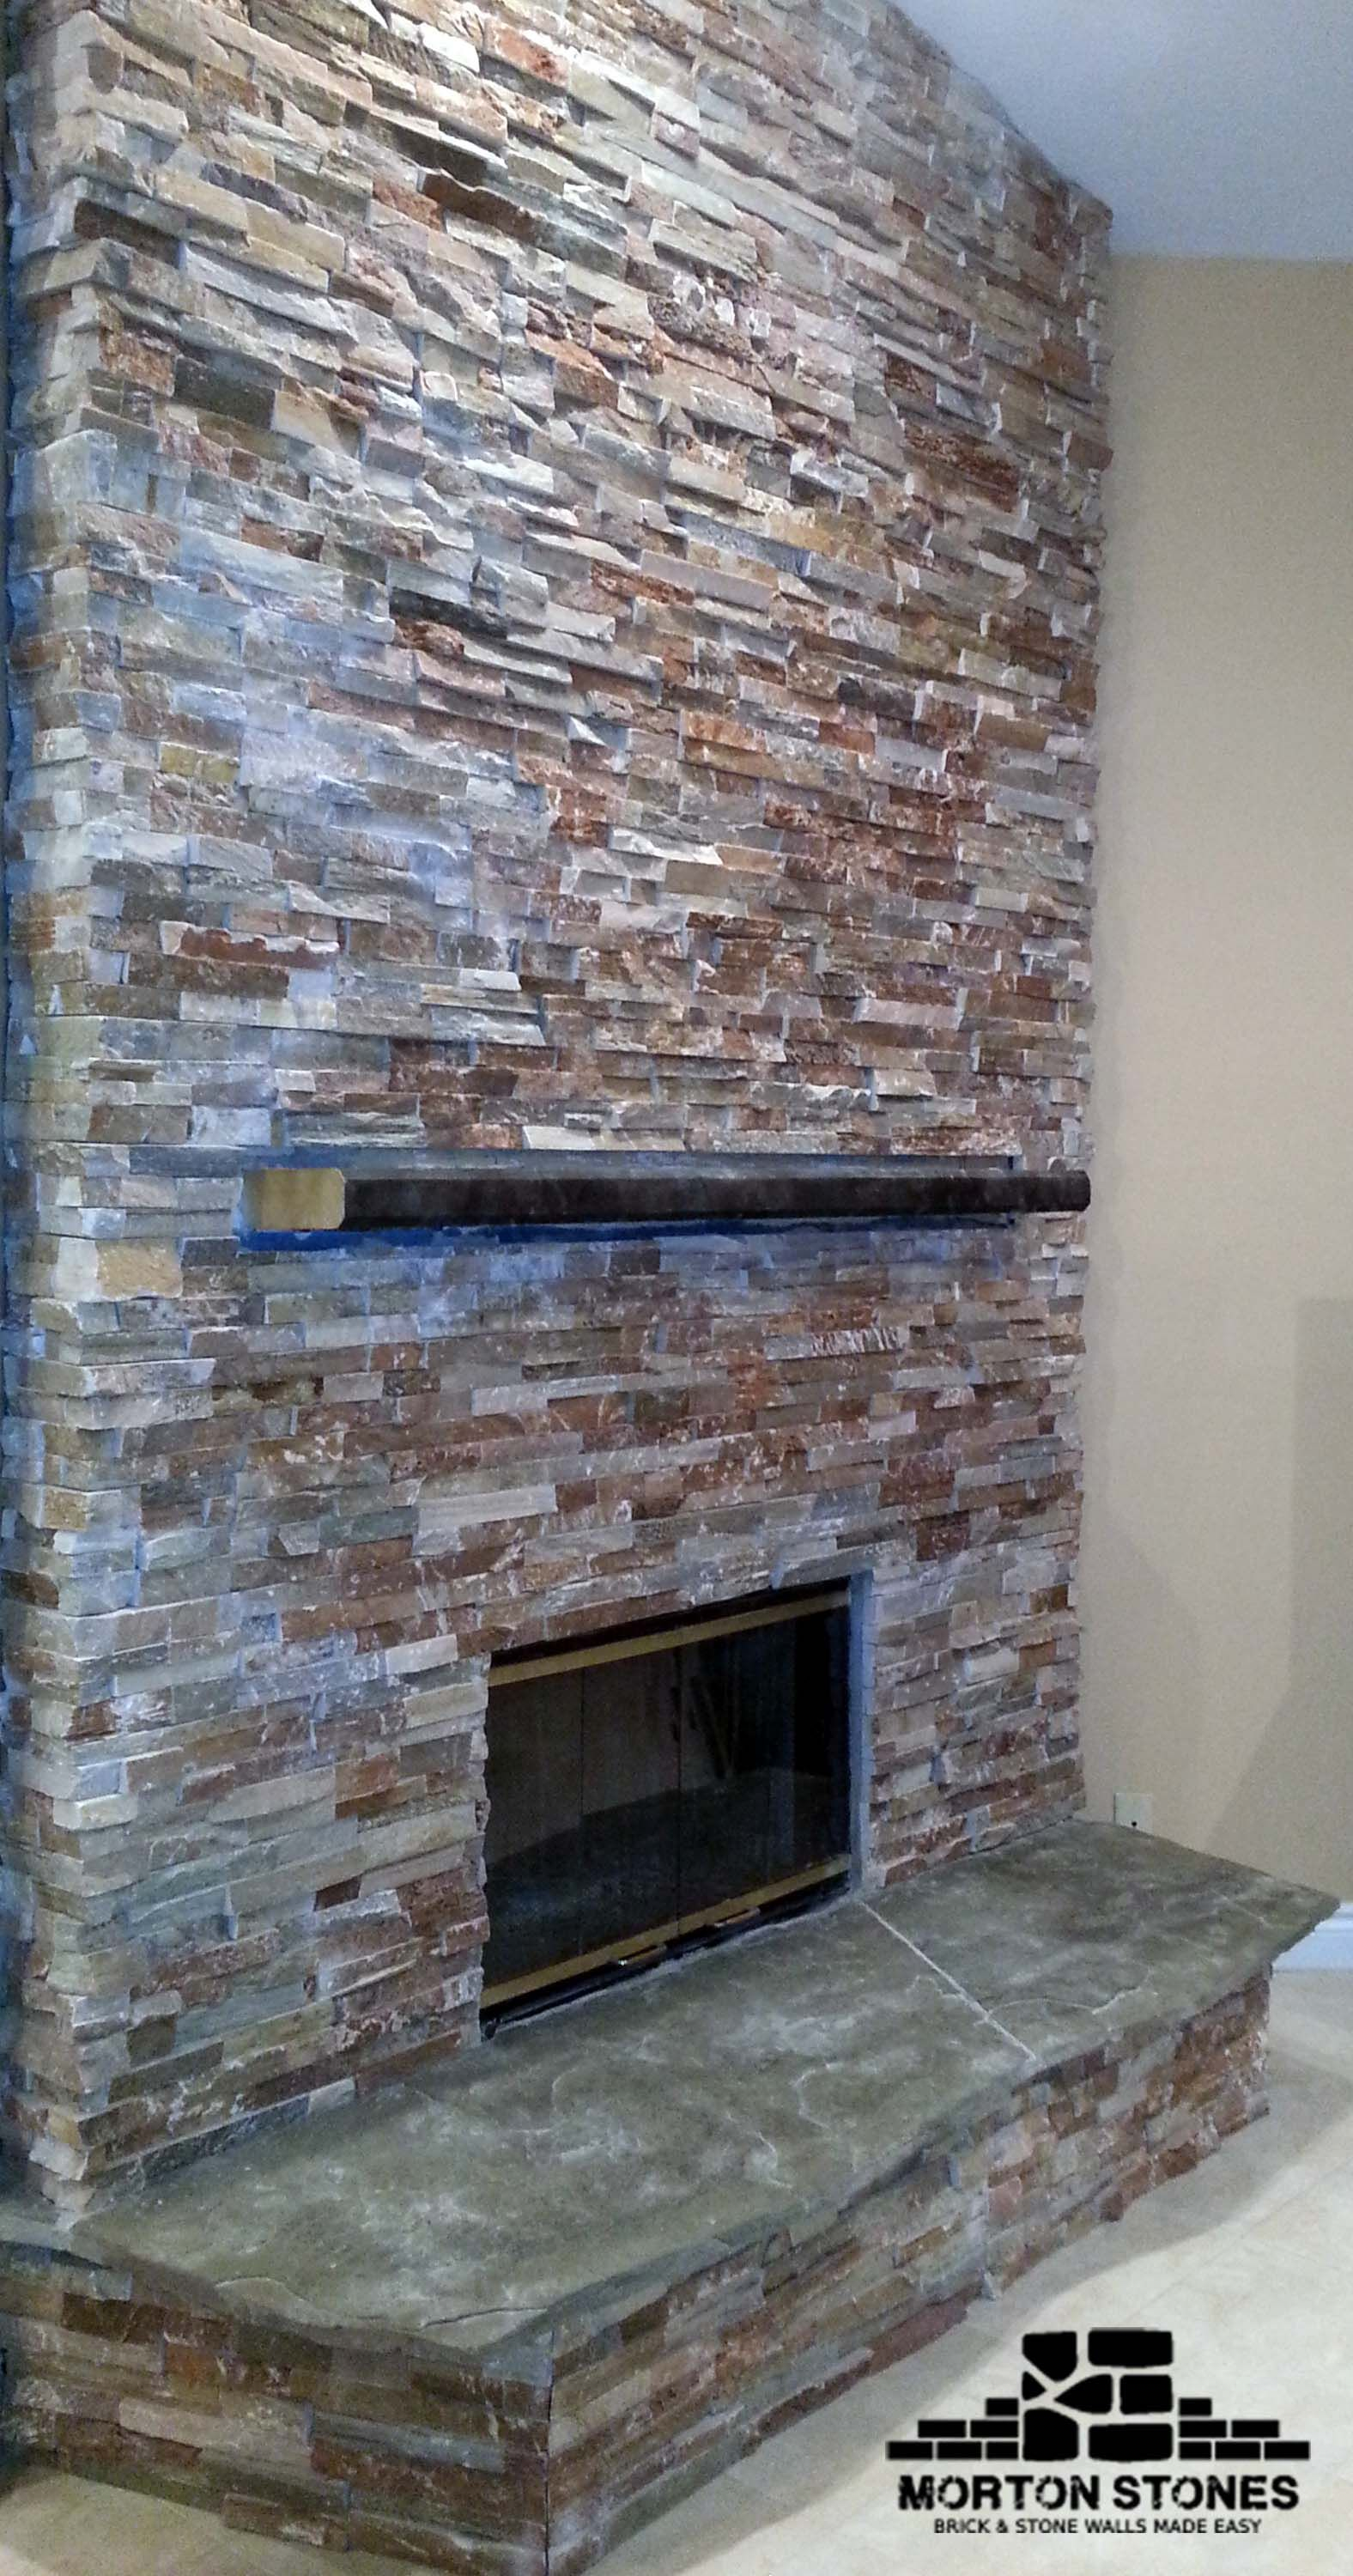 See More Ideas And Inspiration On Renovating Your Home Interior Mortonstones Brick Brickfireplace Fireplace Stone Veneer Fireplace Brick Veneer Fireplace